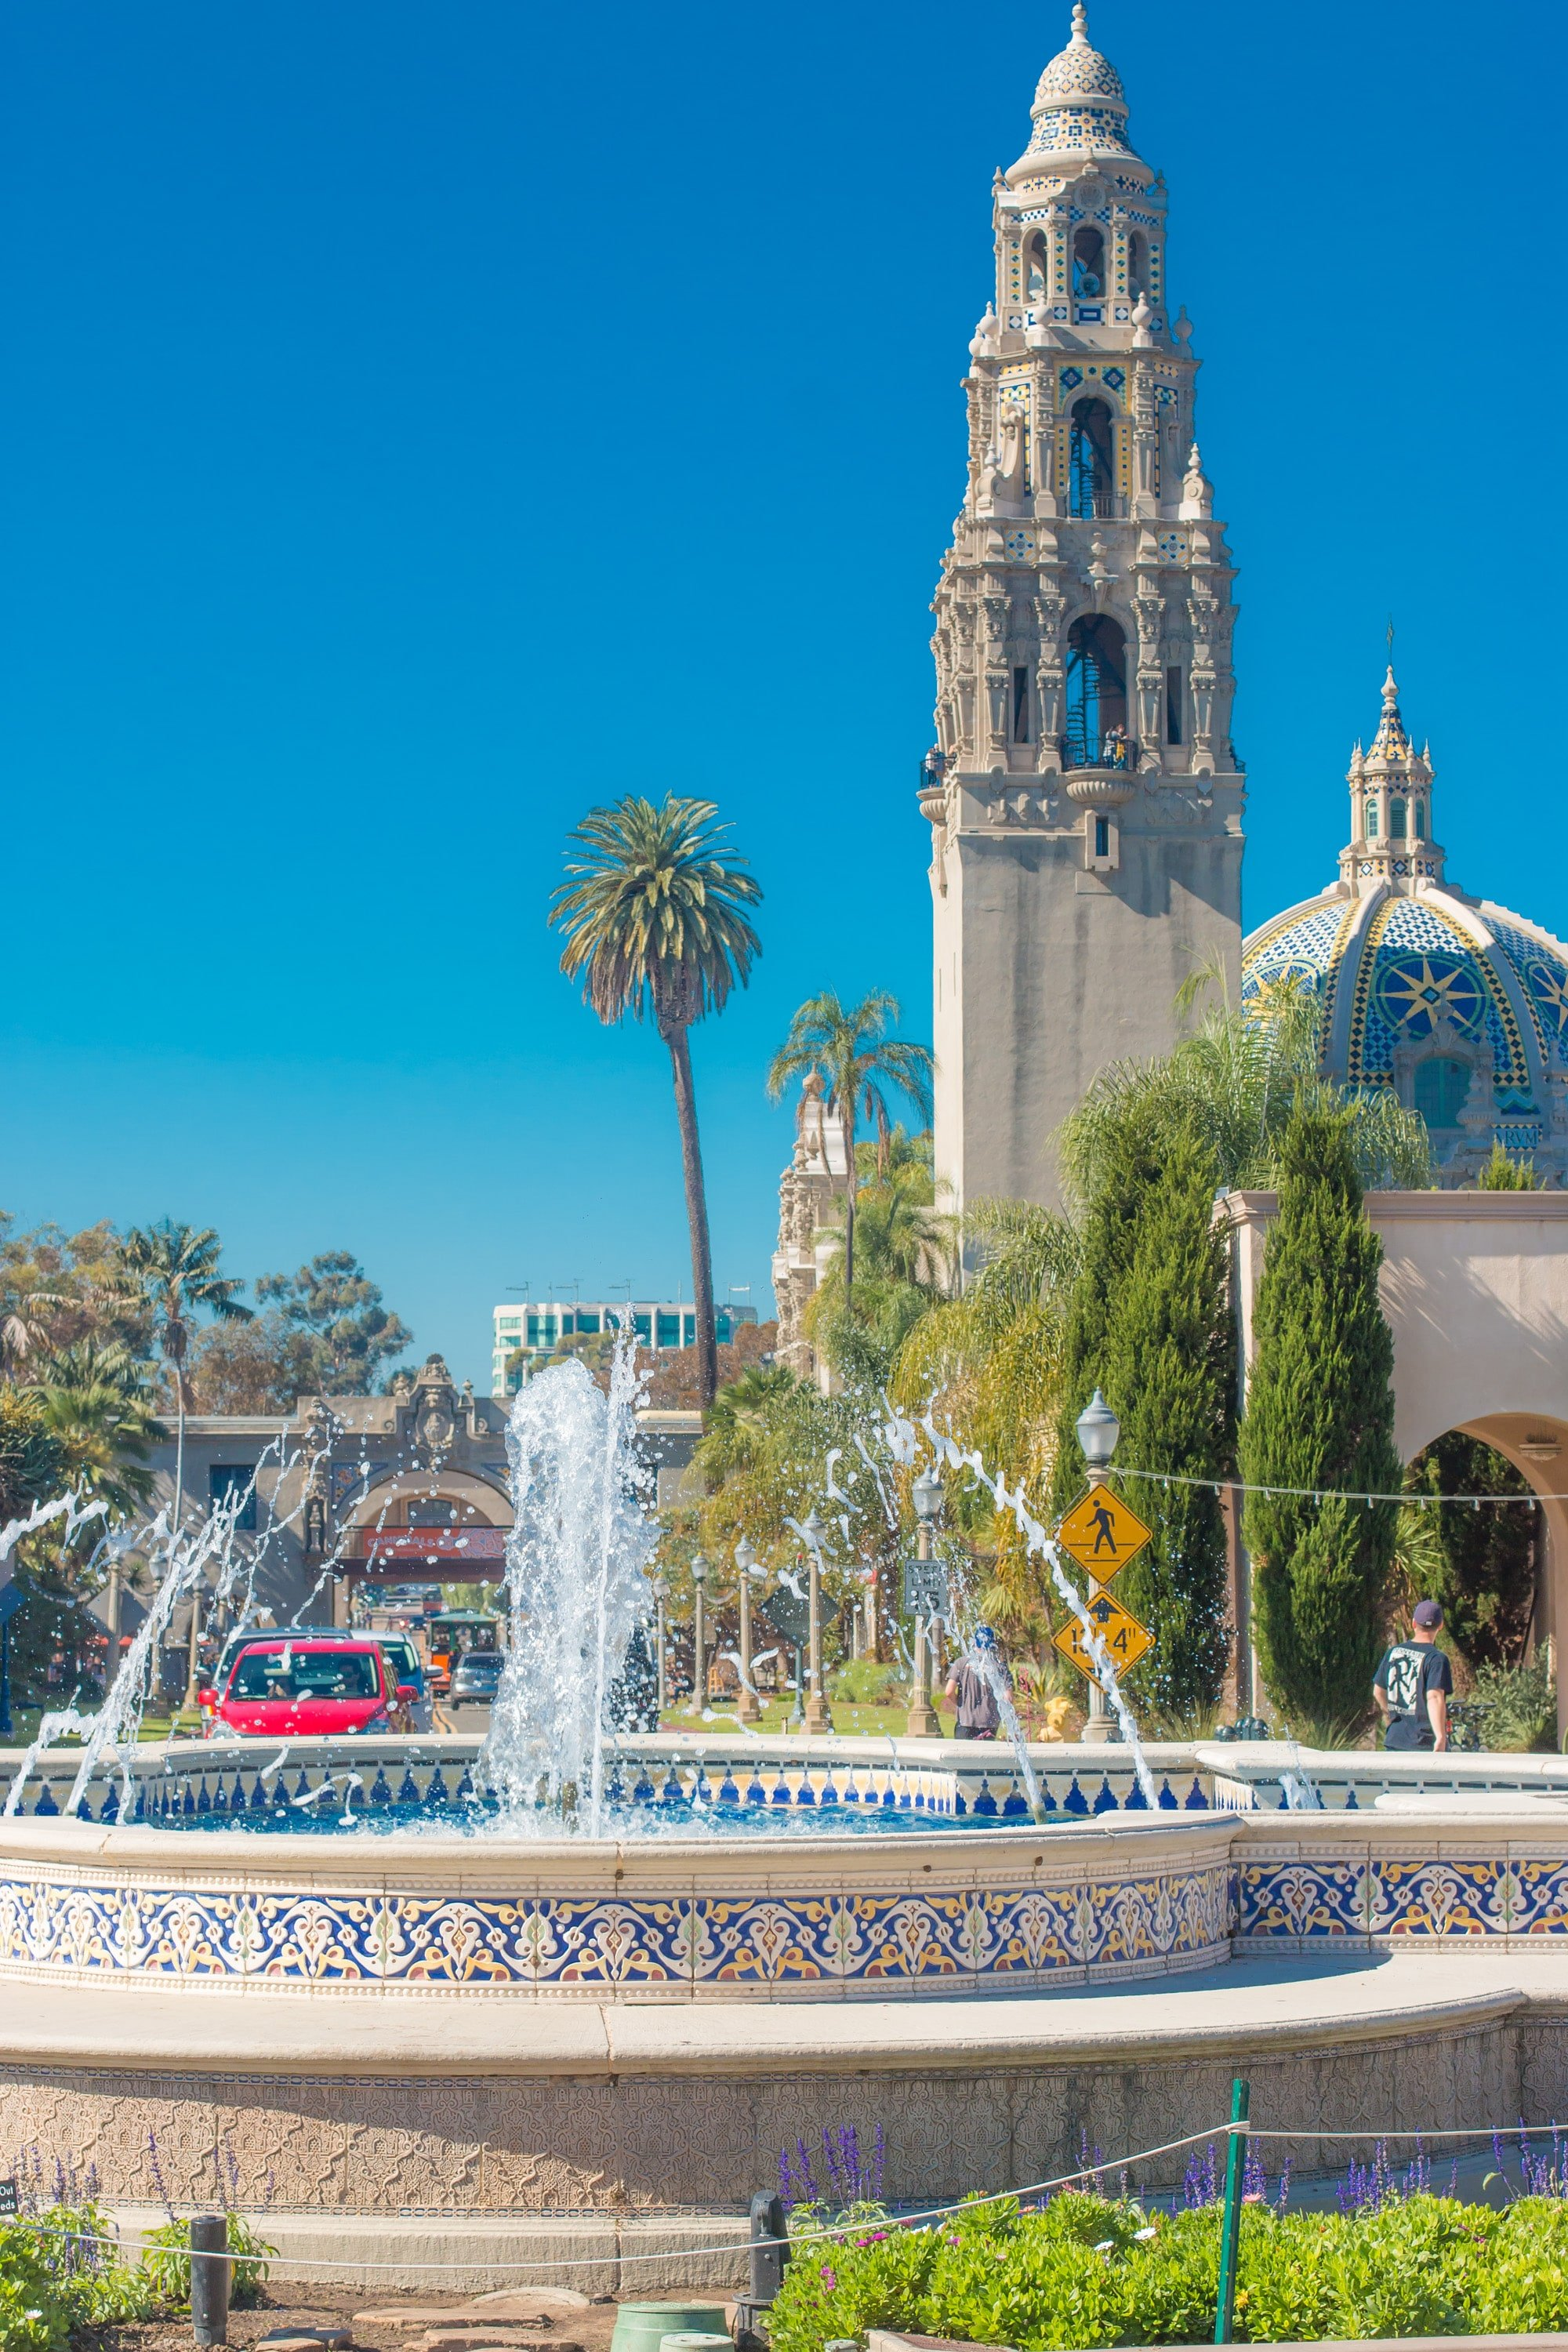 Things to Do in Balboa Park: Museum of Man and California Tower